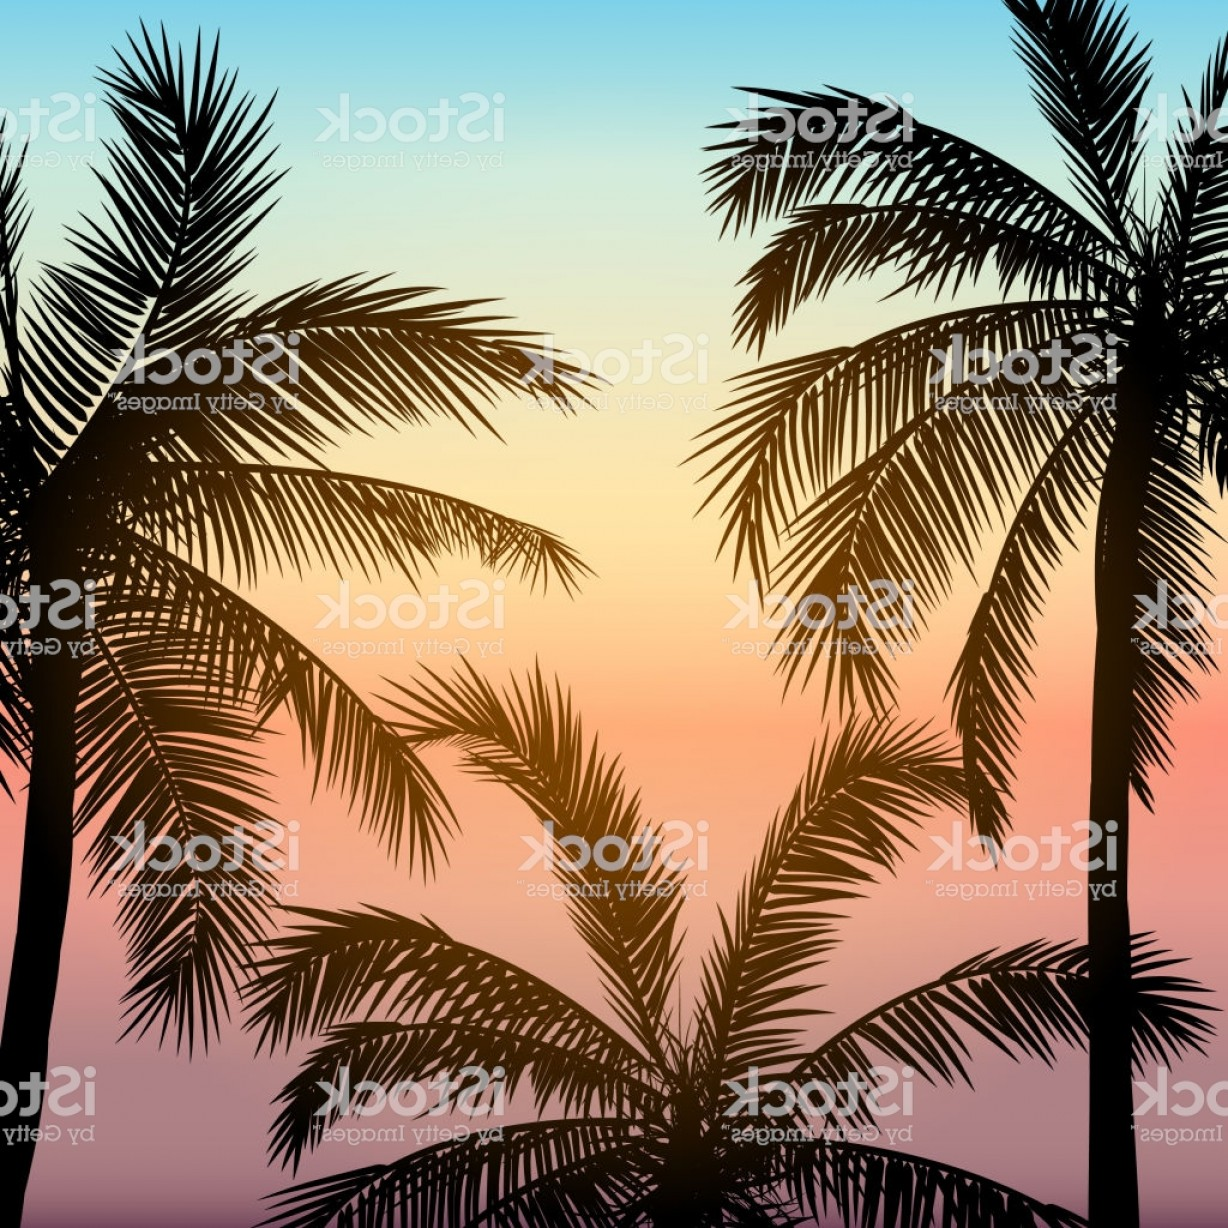 Card With Realistic Palm Trees Silhouette On Tropical Grunge